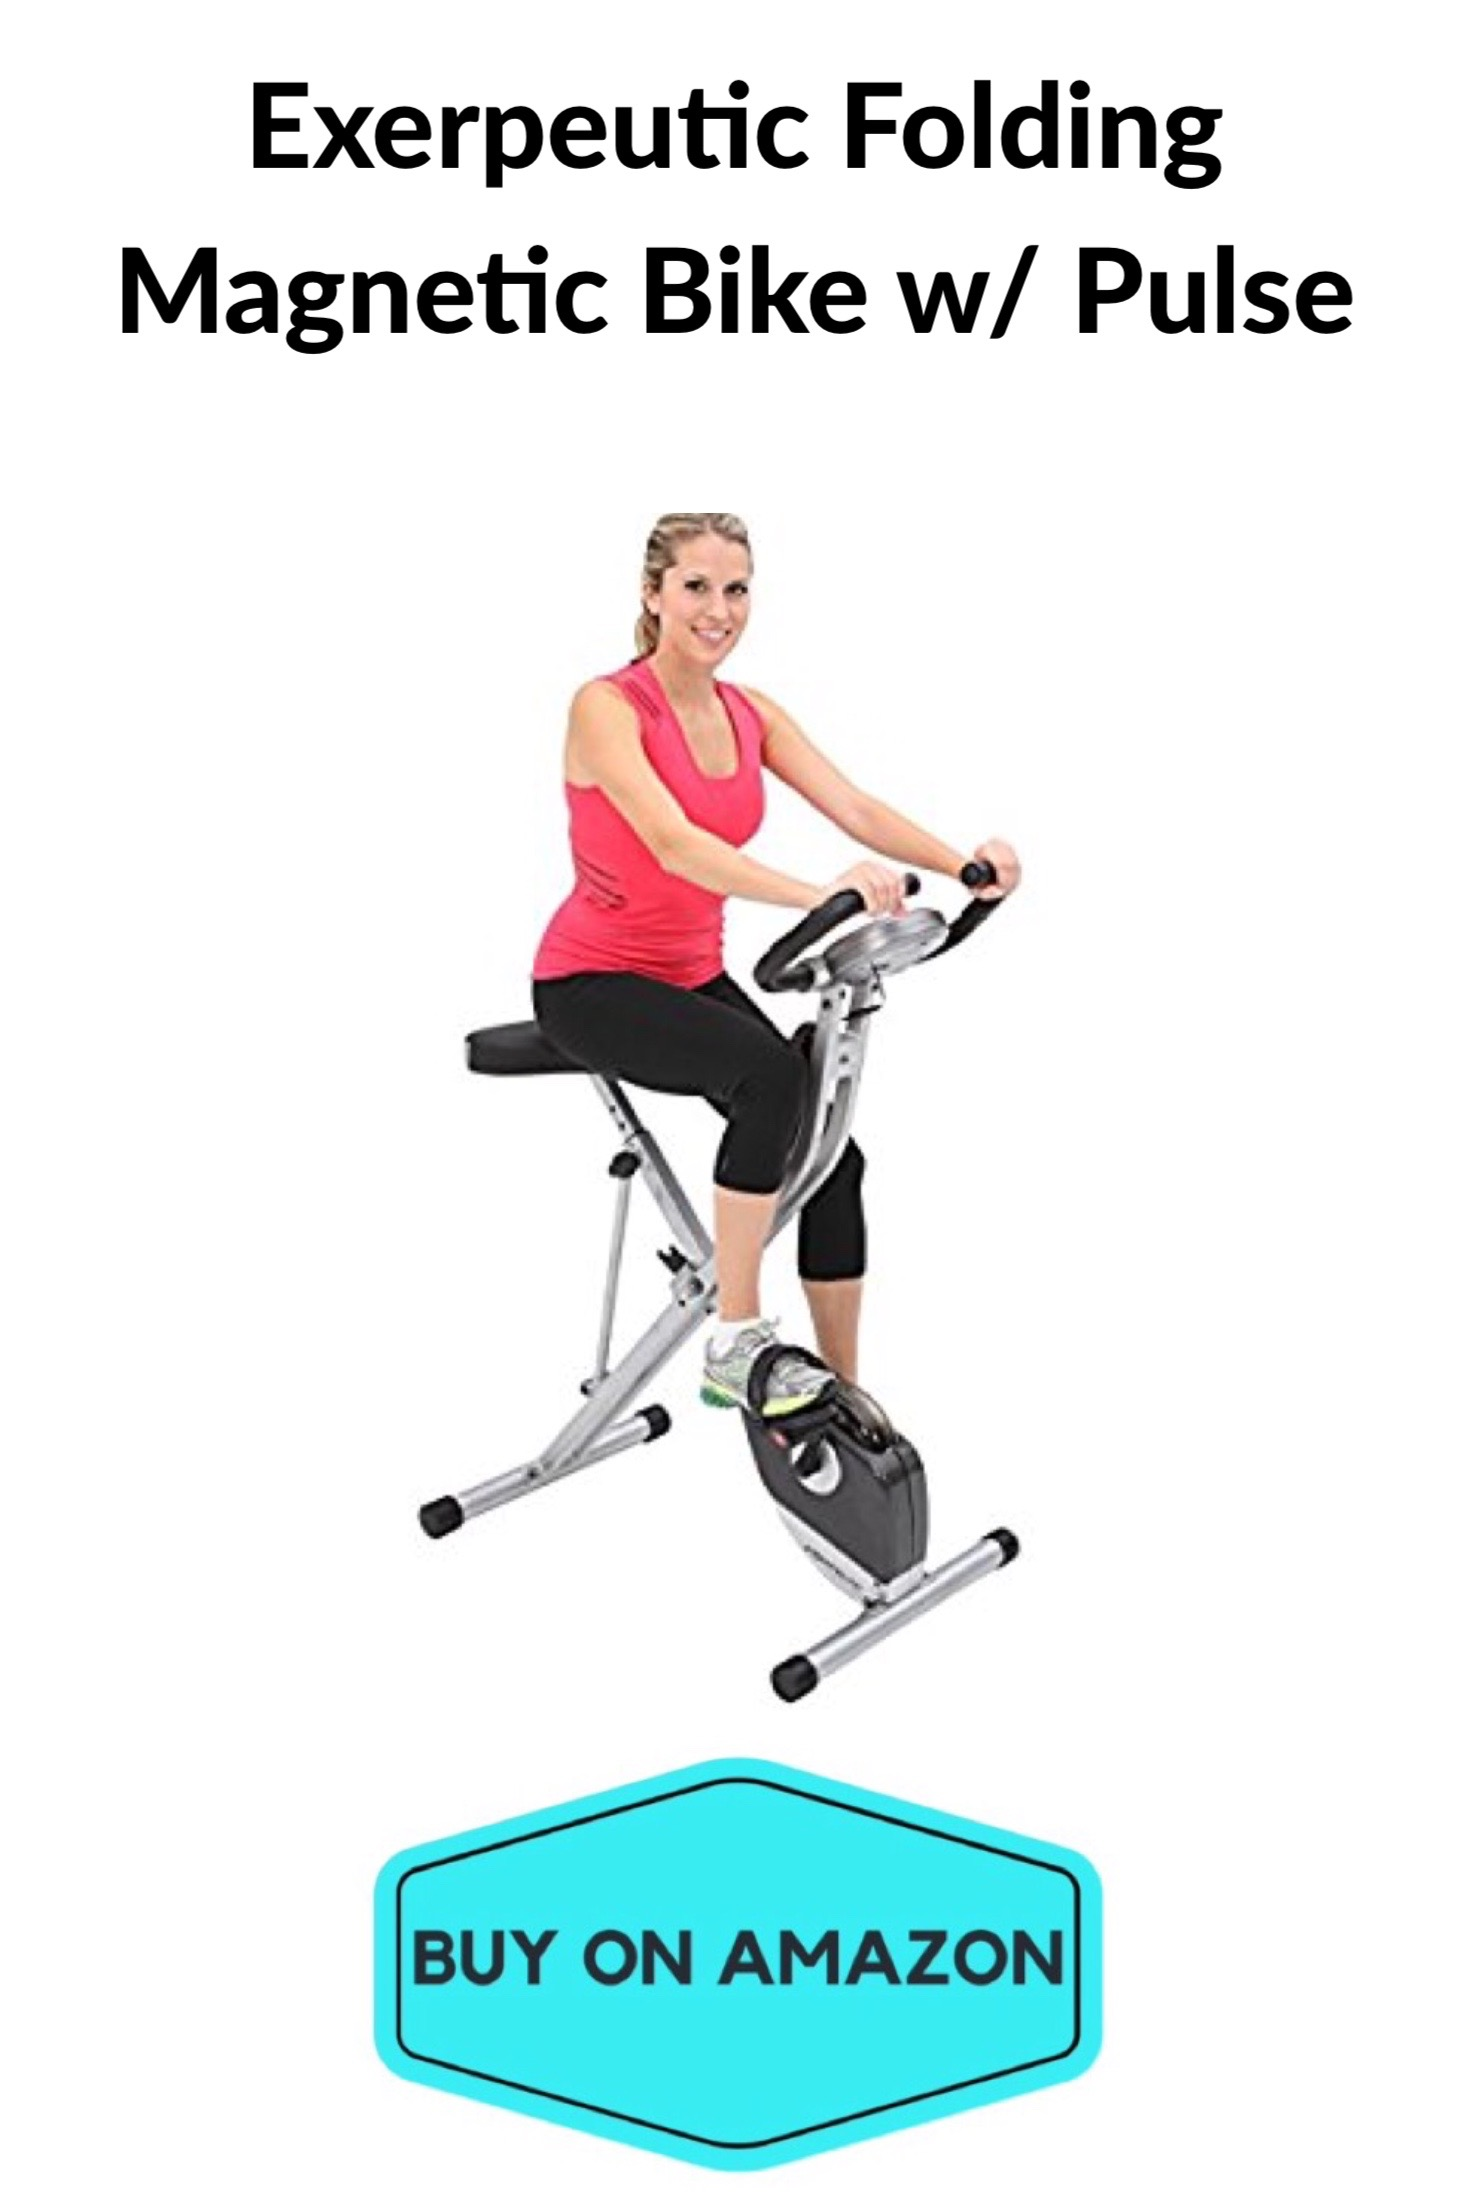 Exerpeutic Folding Magnetic Bike w/ Pulse